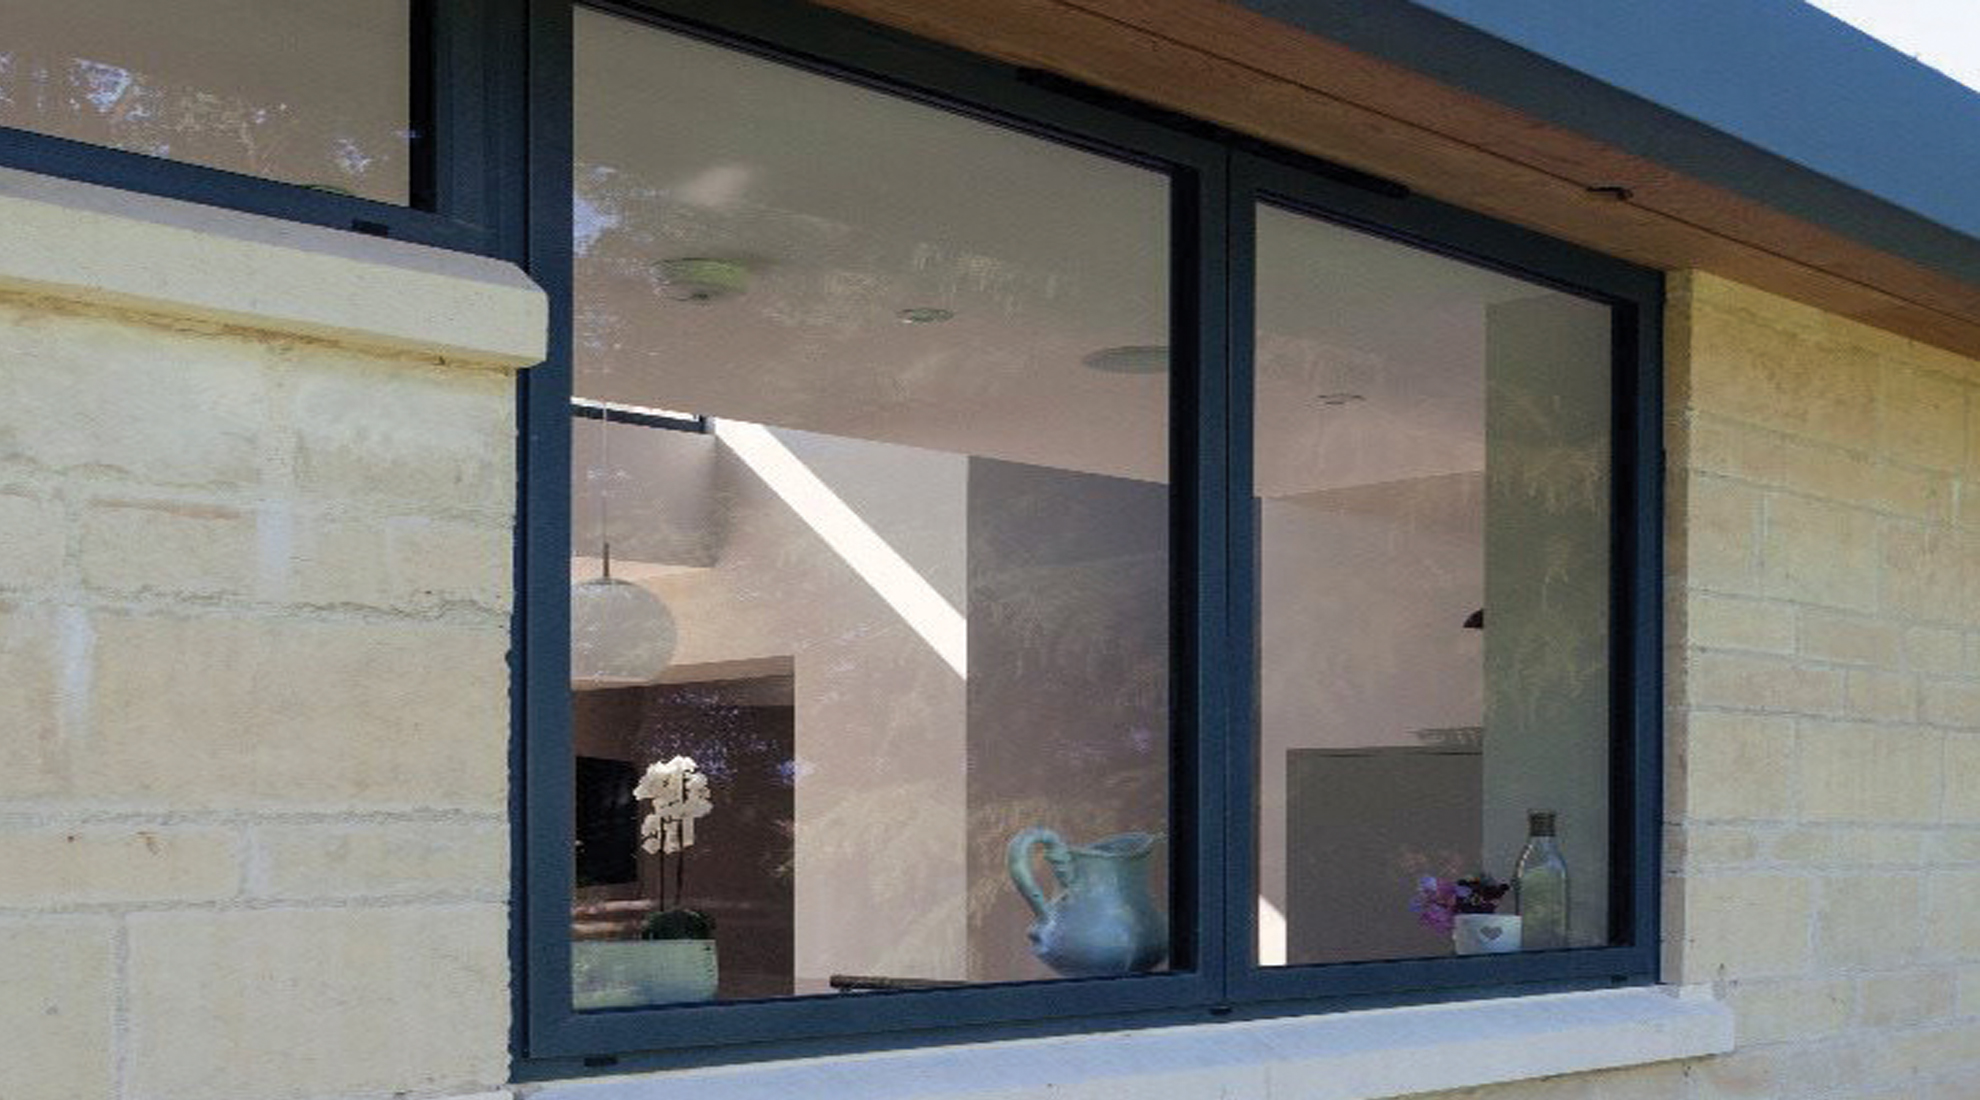 application shot of a grey aluminium casement window on the outside of a home